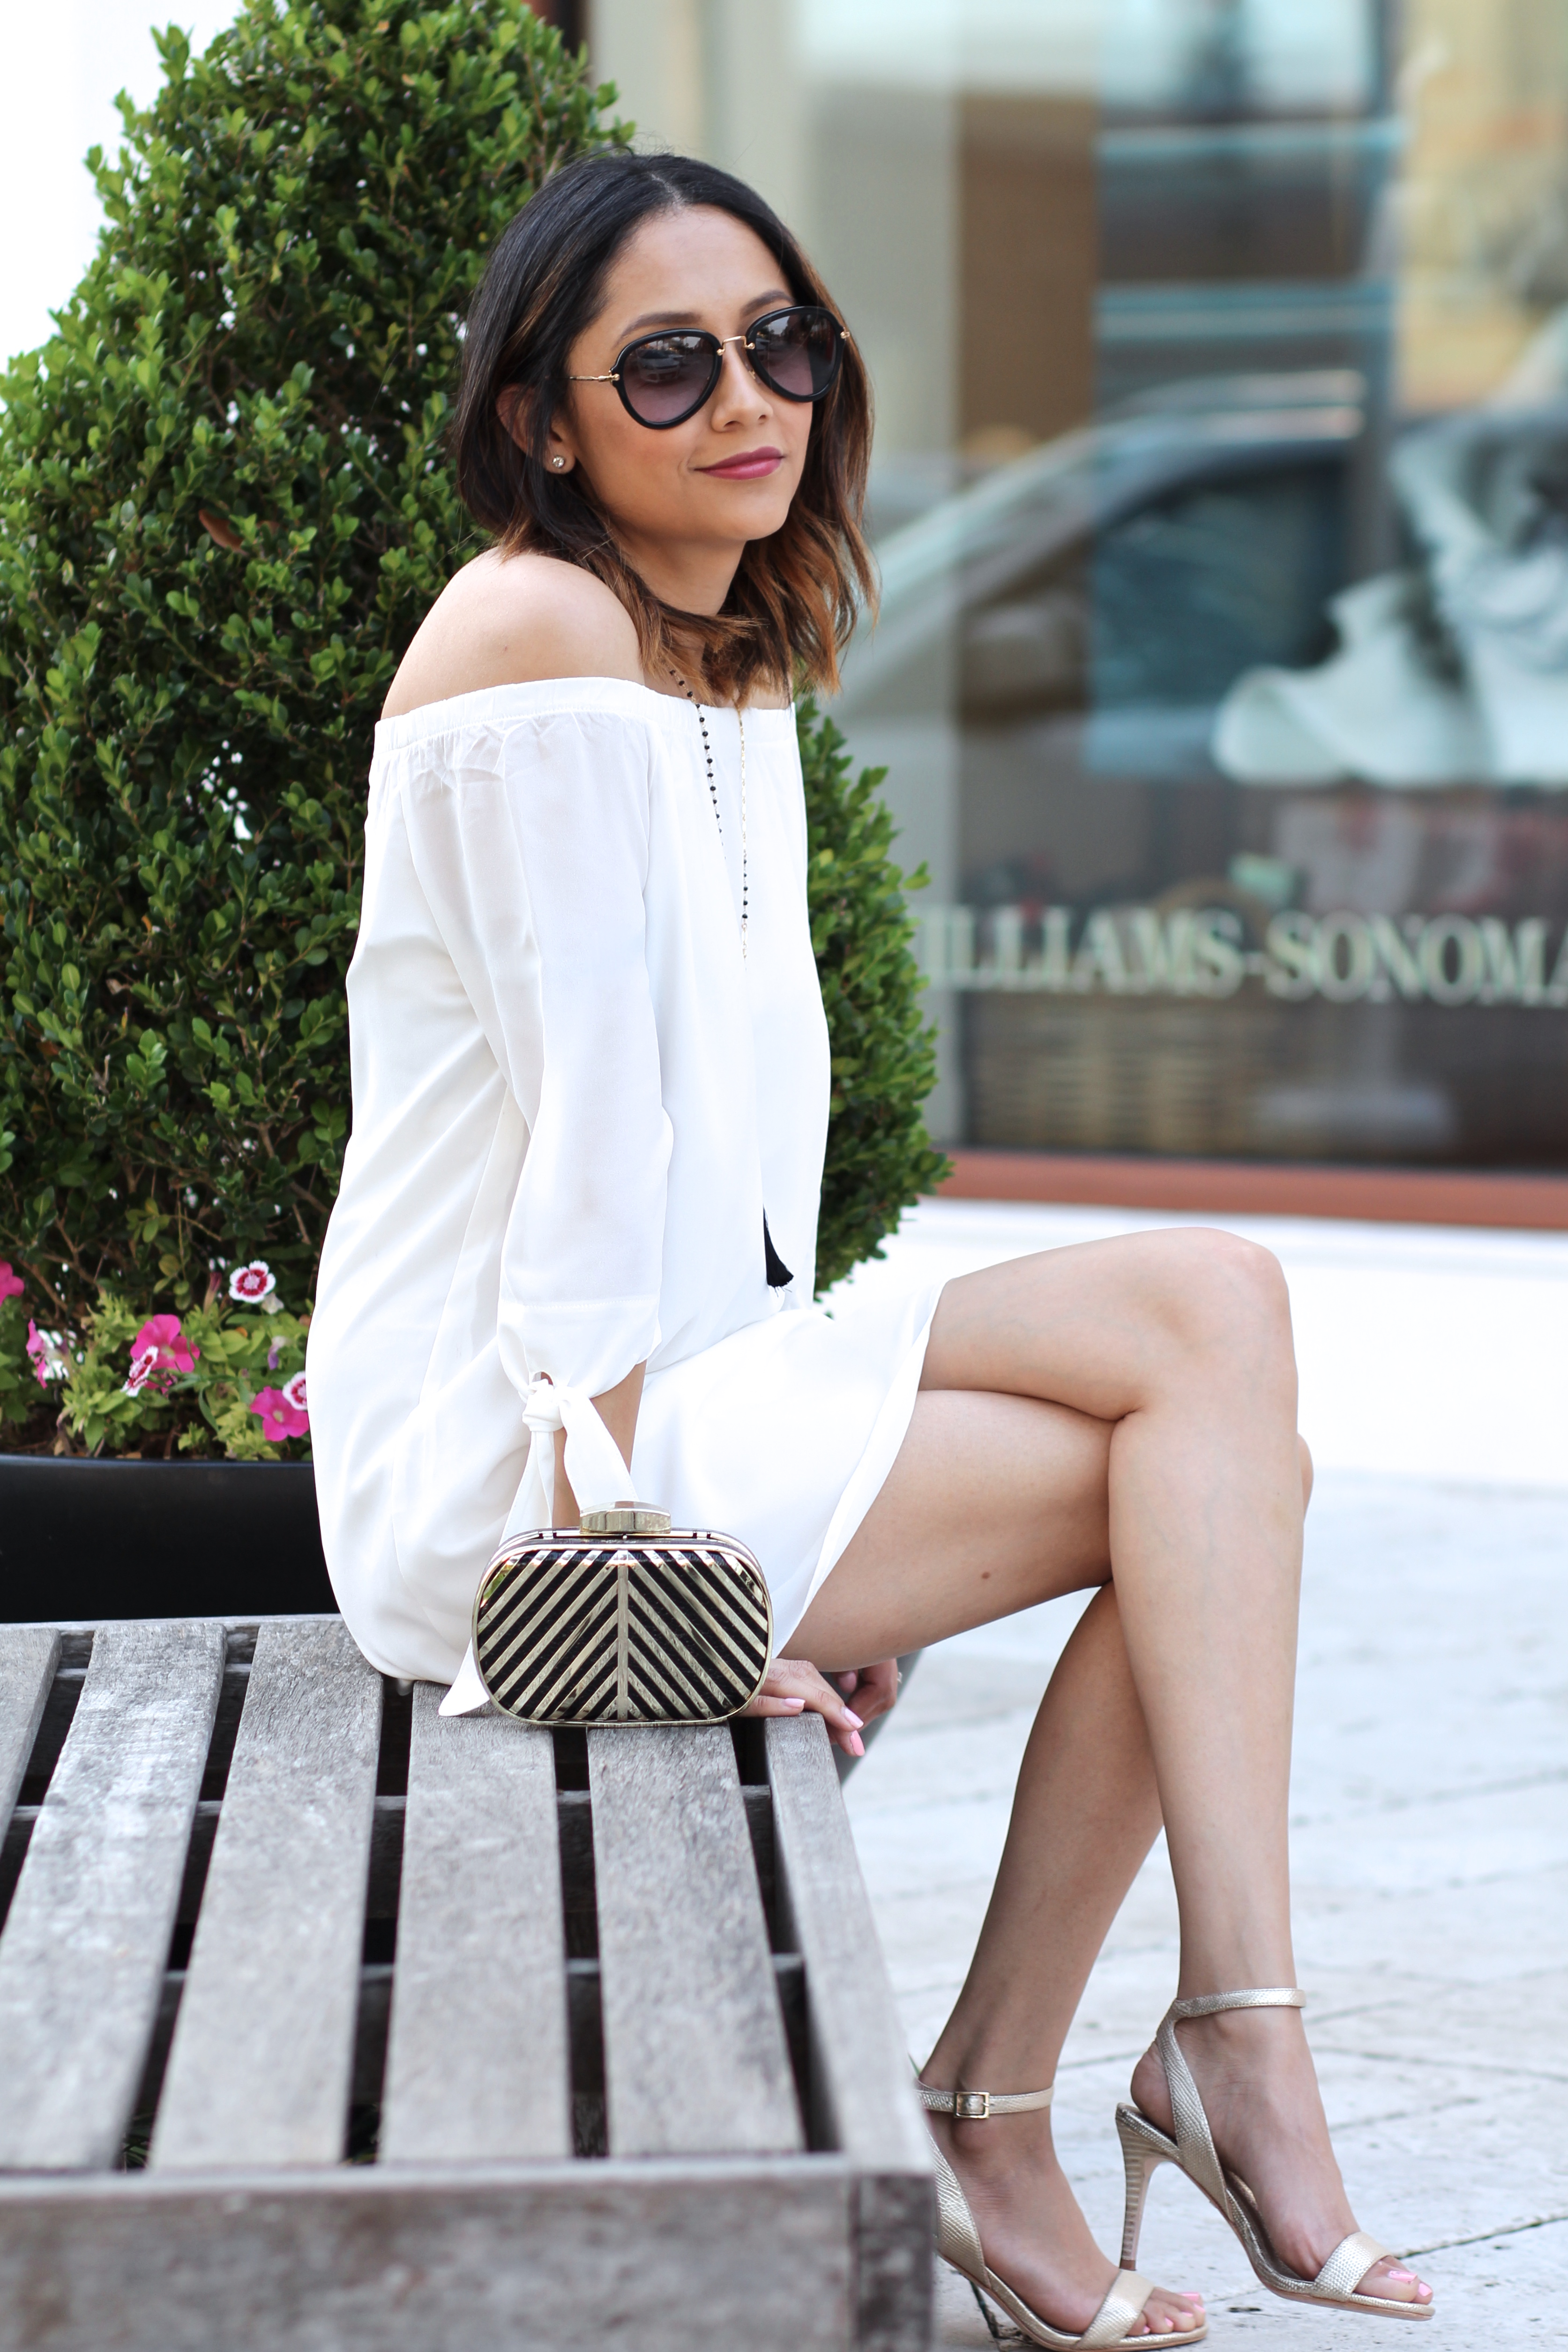 How to wear white for spring and after labor day